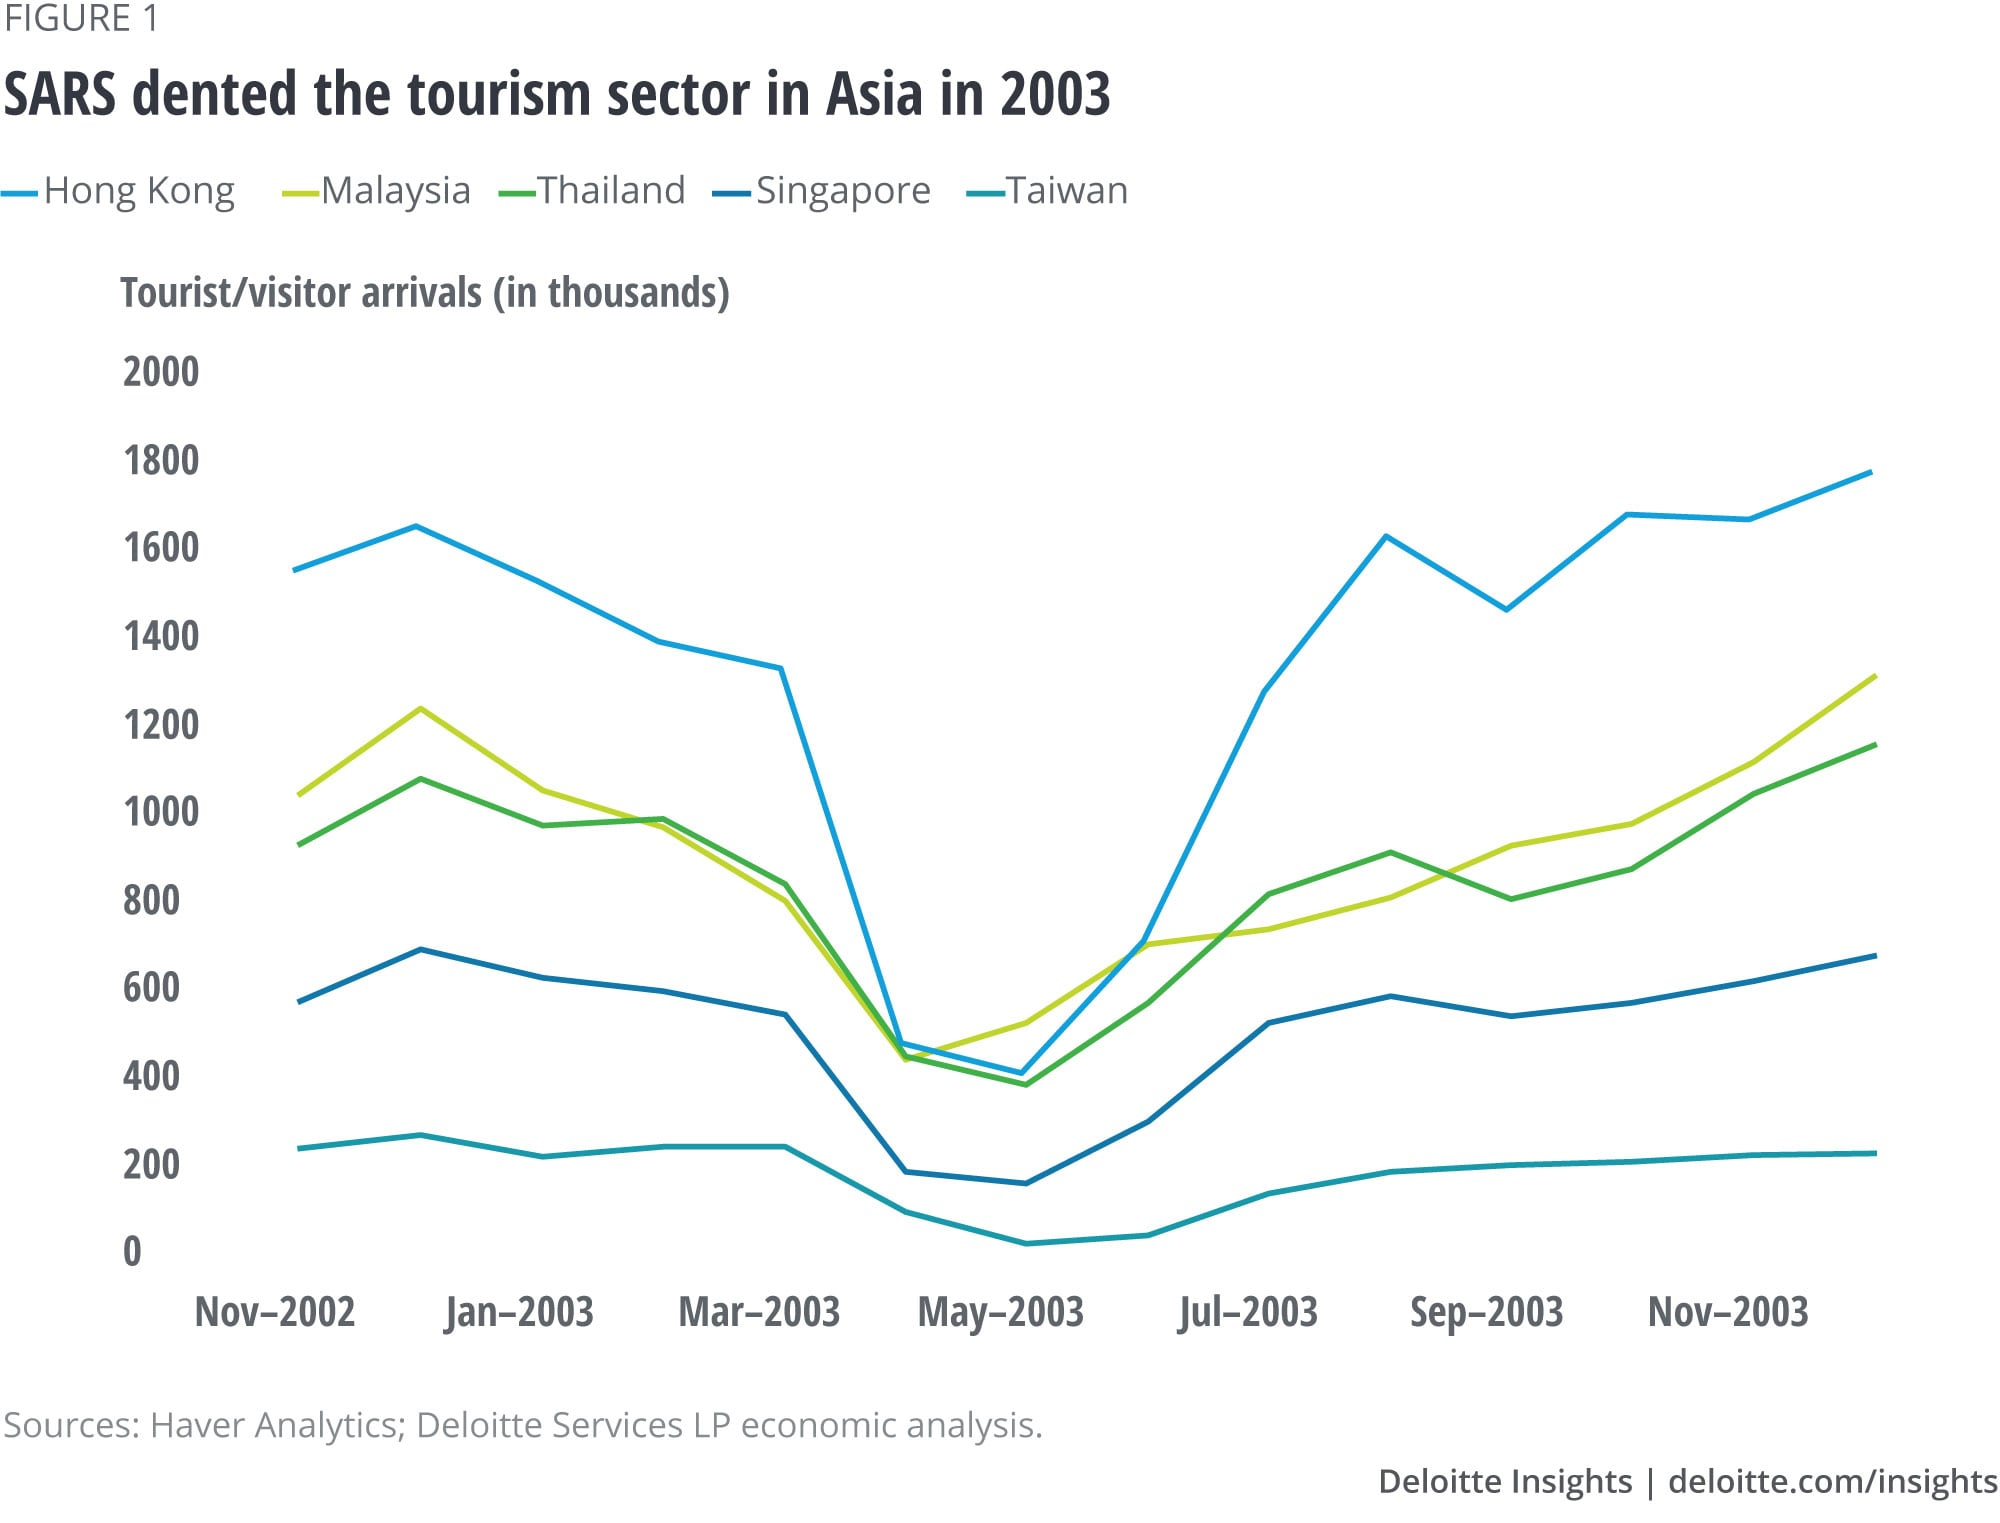 SARS dented the tourism sector in Asia in 2003